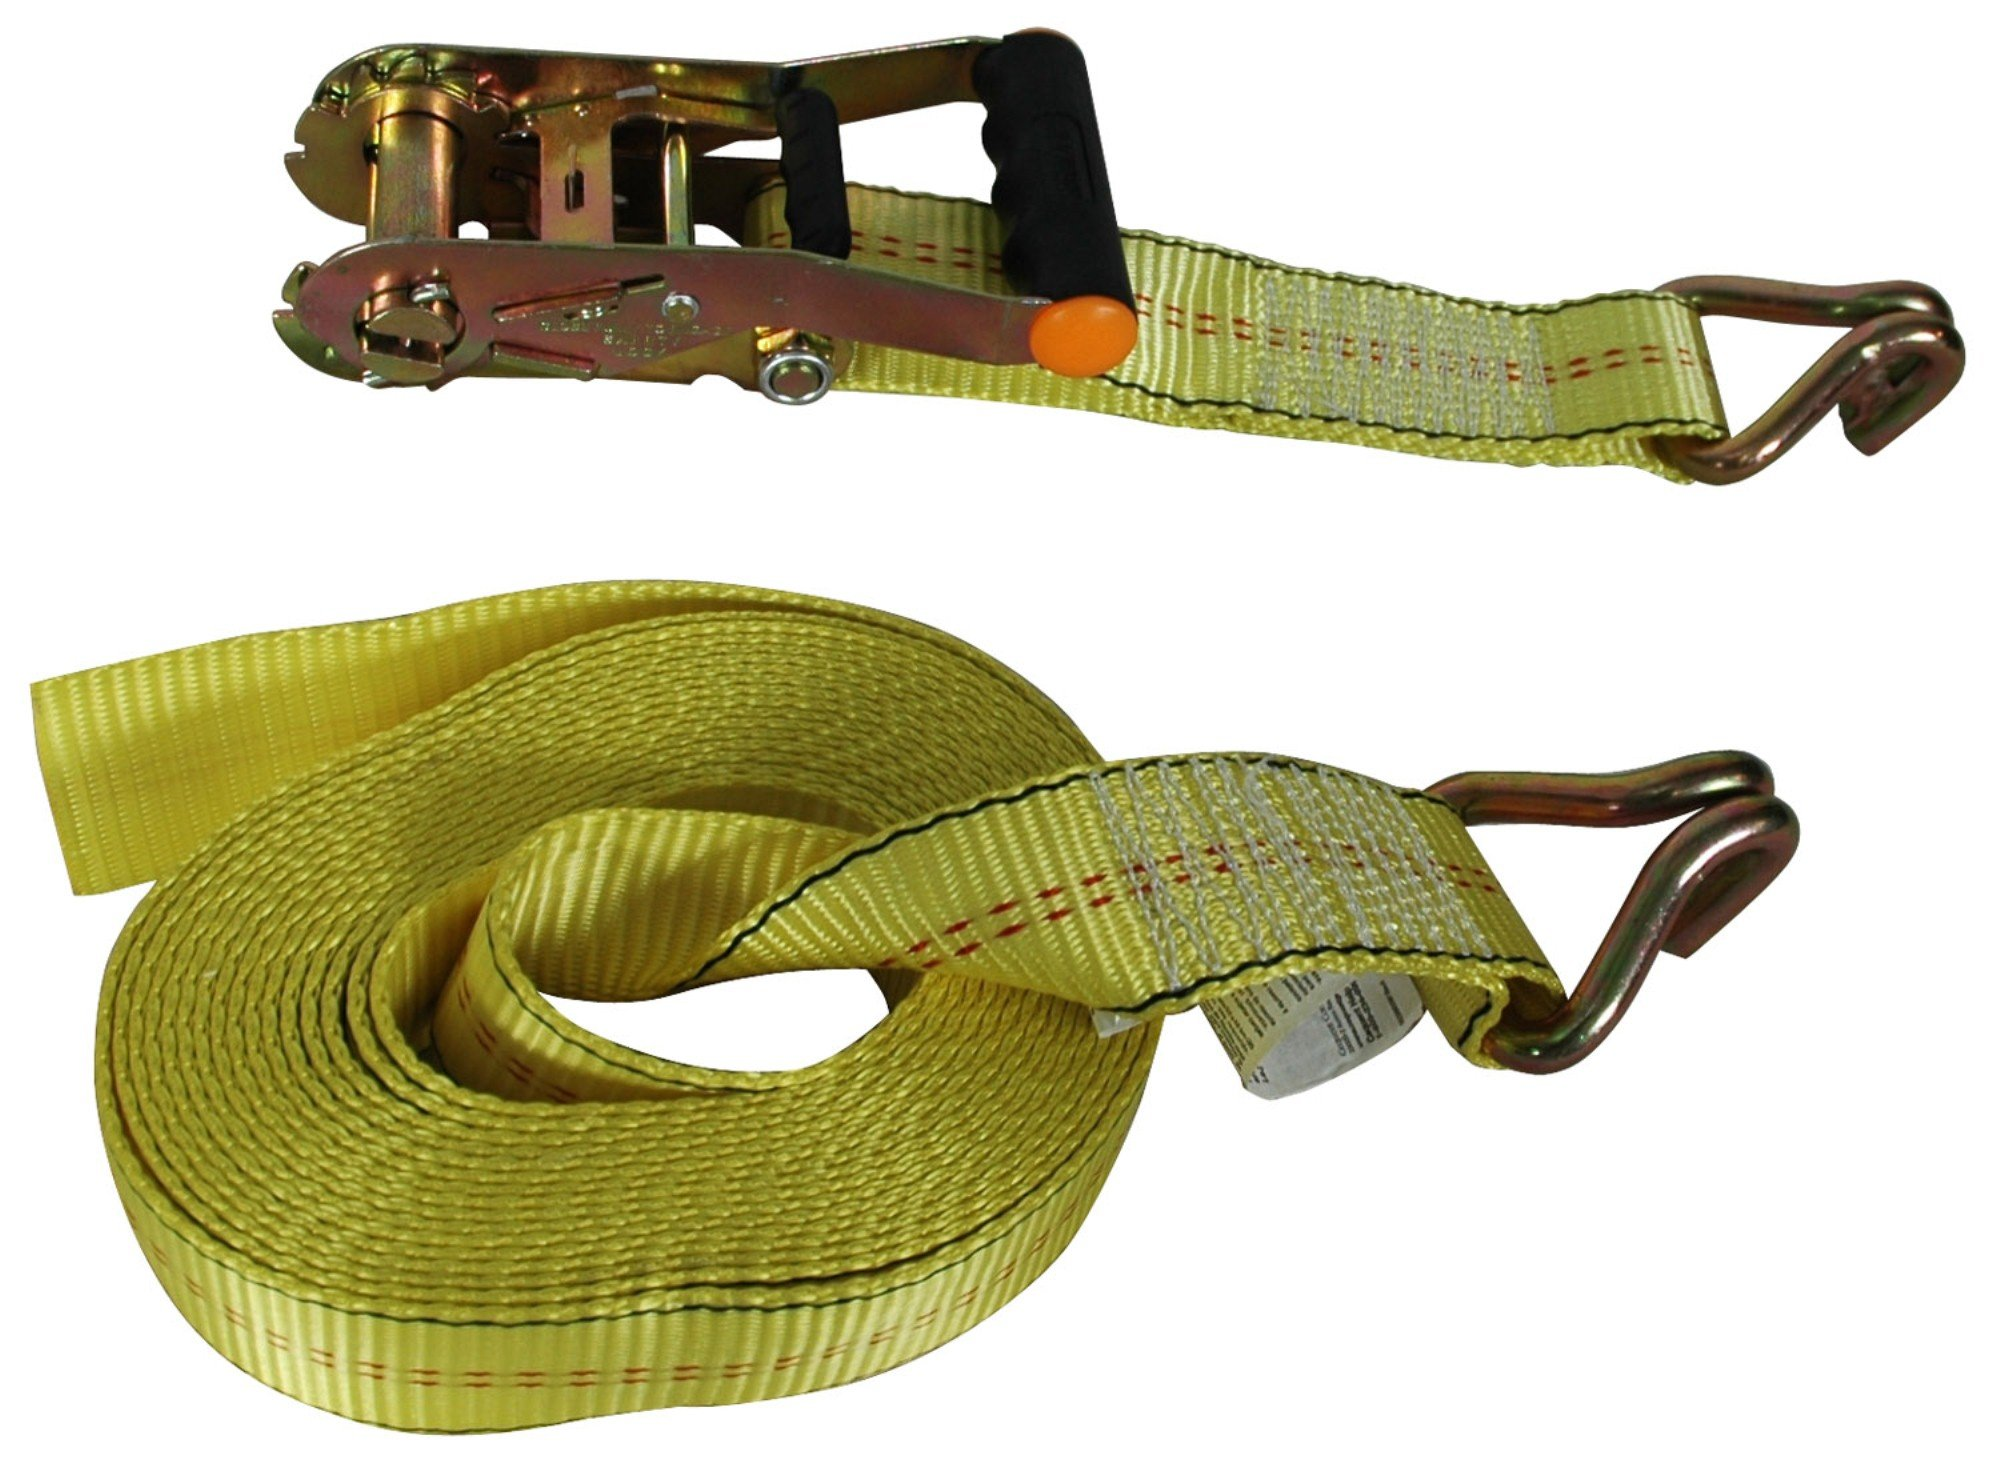 Highland (1152500) 25' Yellow Super Duty Ratchet Tie Down with Double J-Hooks - 1 piece